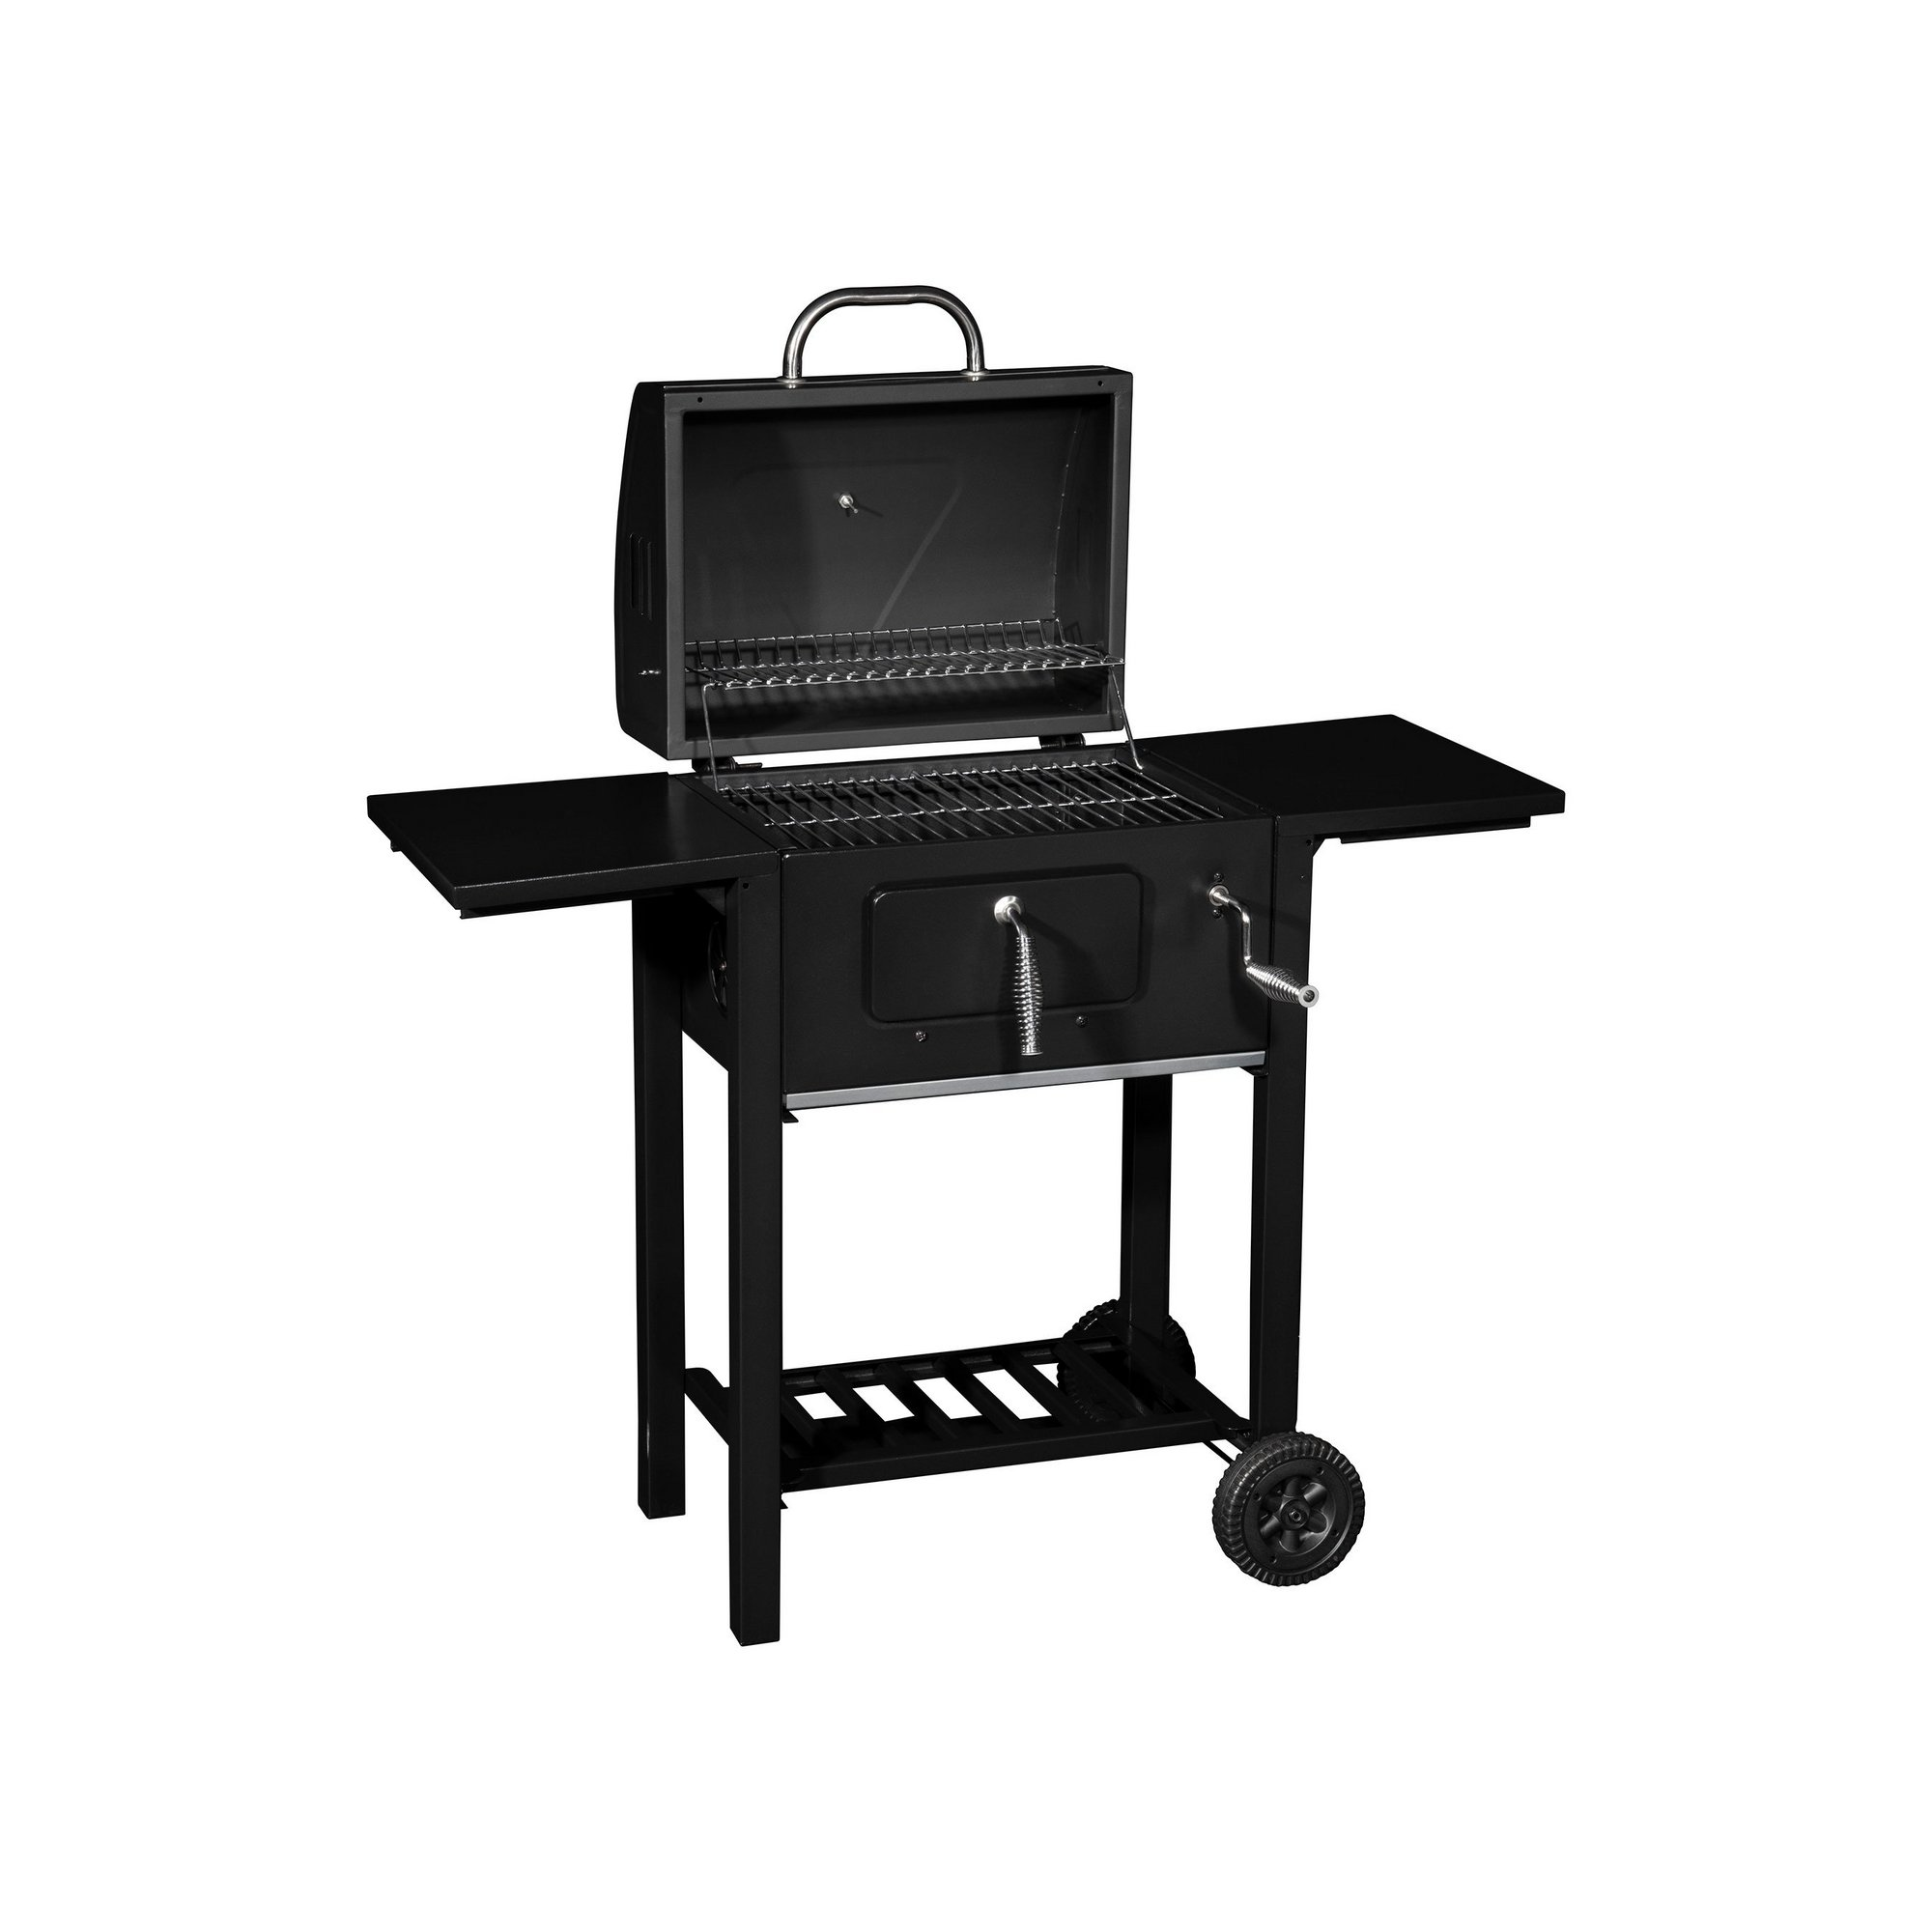 Image of Hairy Bikers Charcoal Trolley Grill BBQ